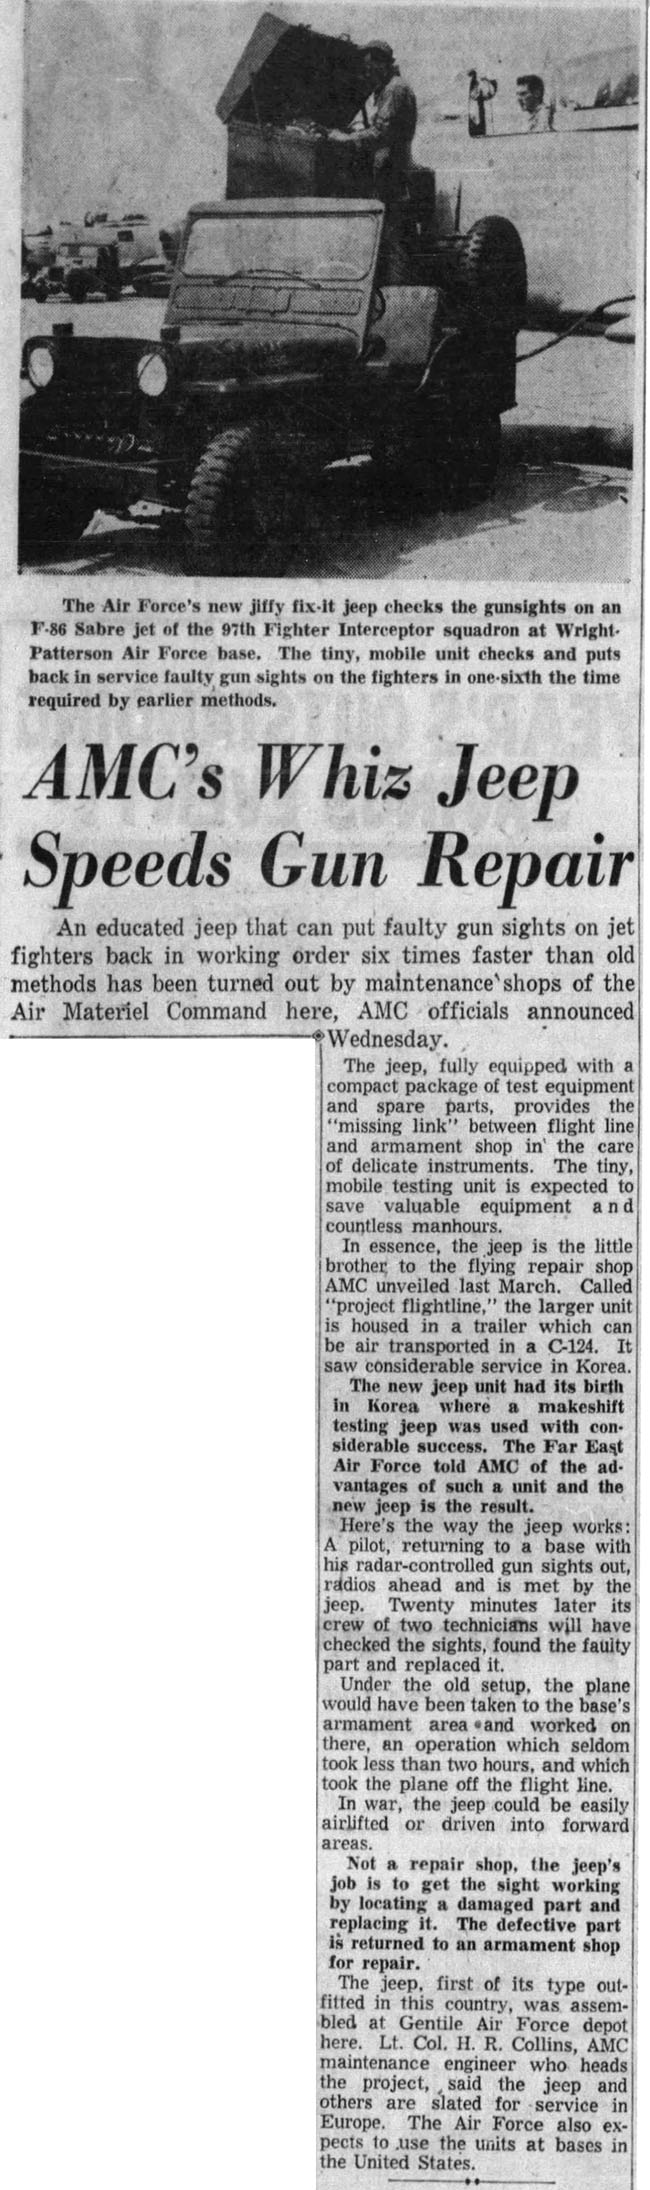 1953-08-19-dayton-daily-news-m38-jiffy-fix-it-jeep-lores